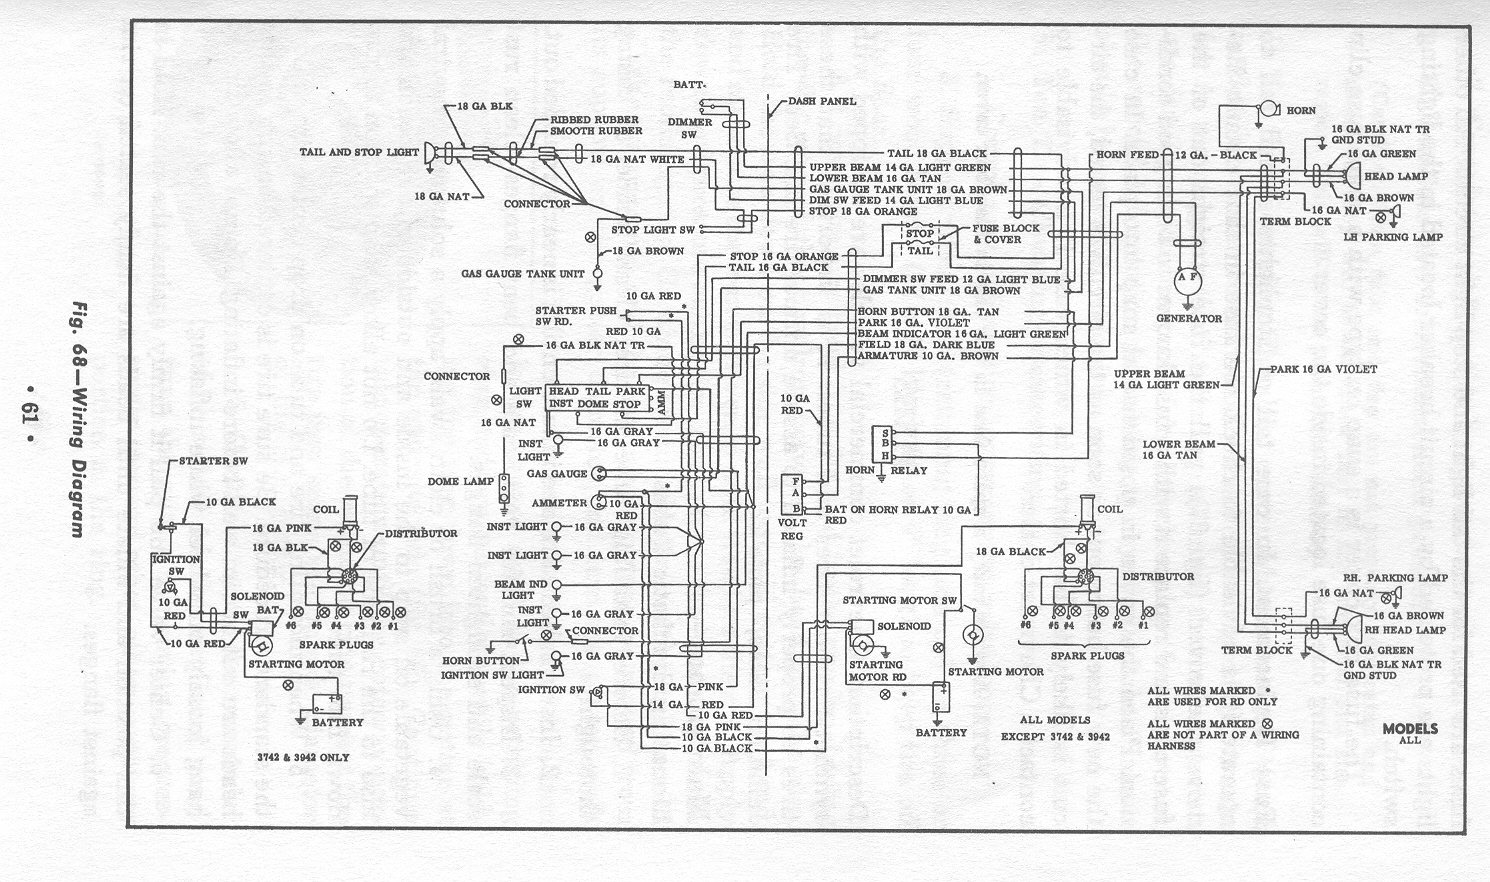 1965 Gm Stereo Wiring Diagram Library 1983 Chevrolet Radio 83 Chevy Engine Get Free Image About C10